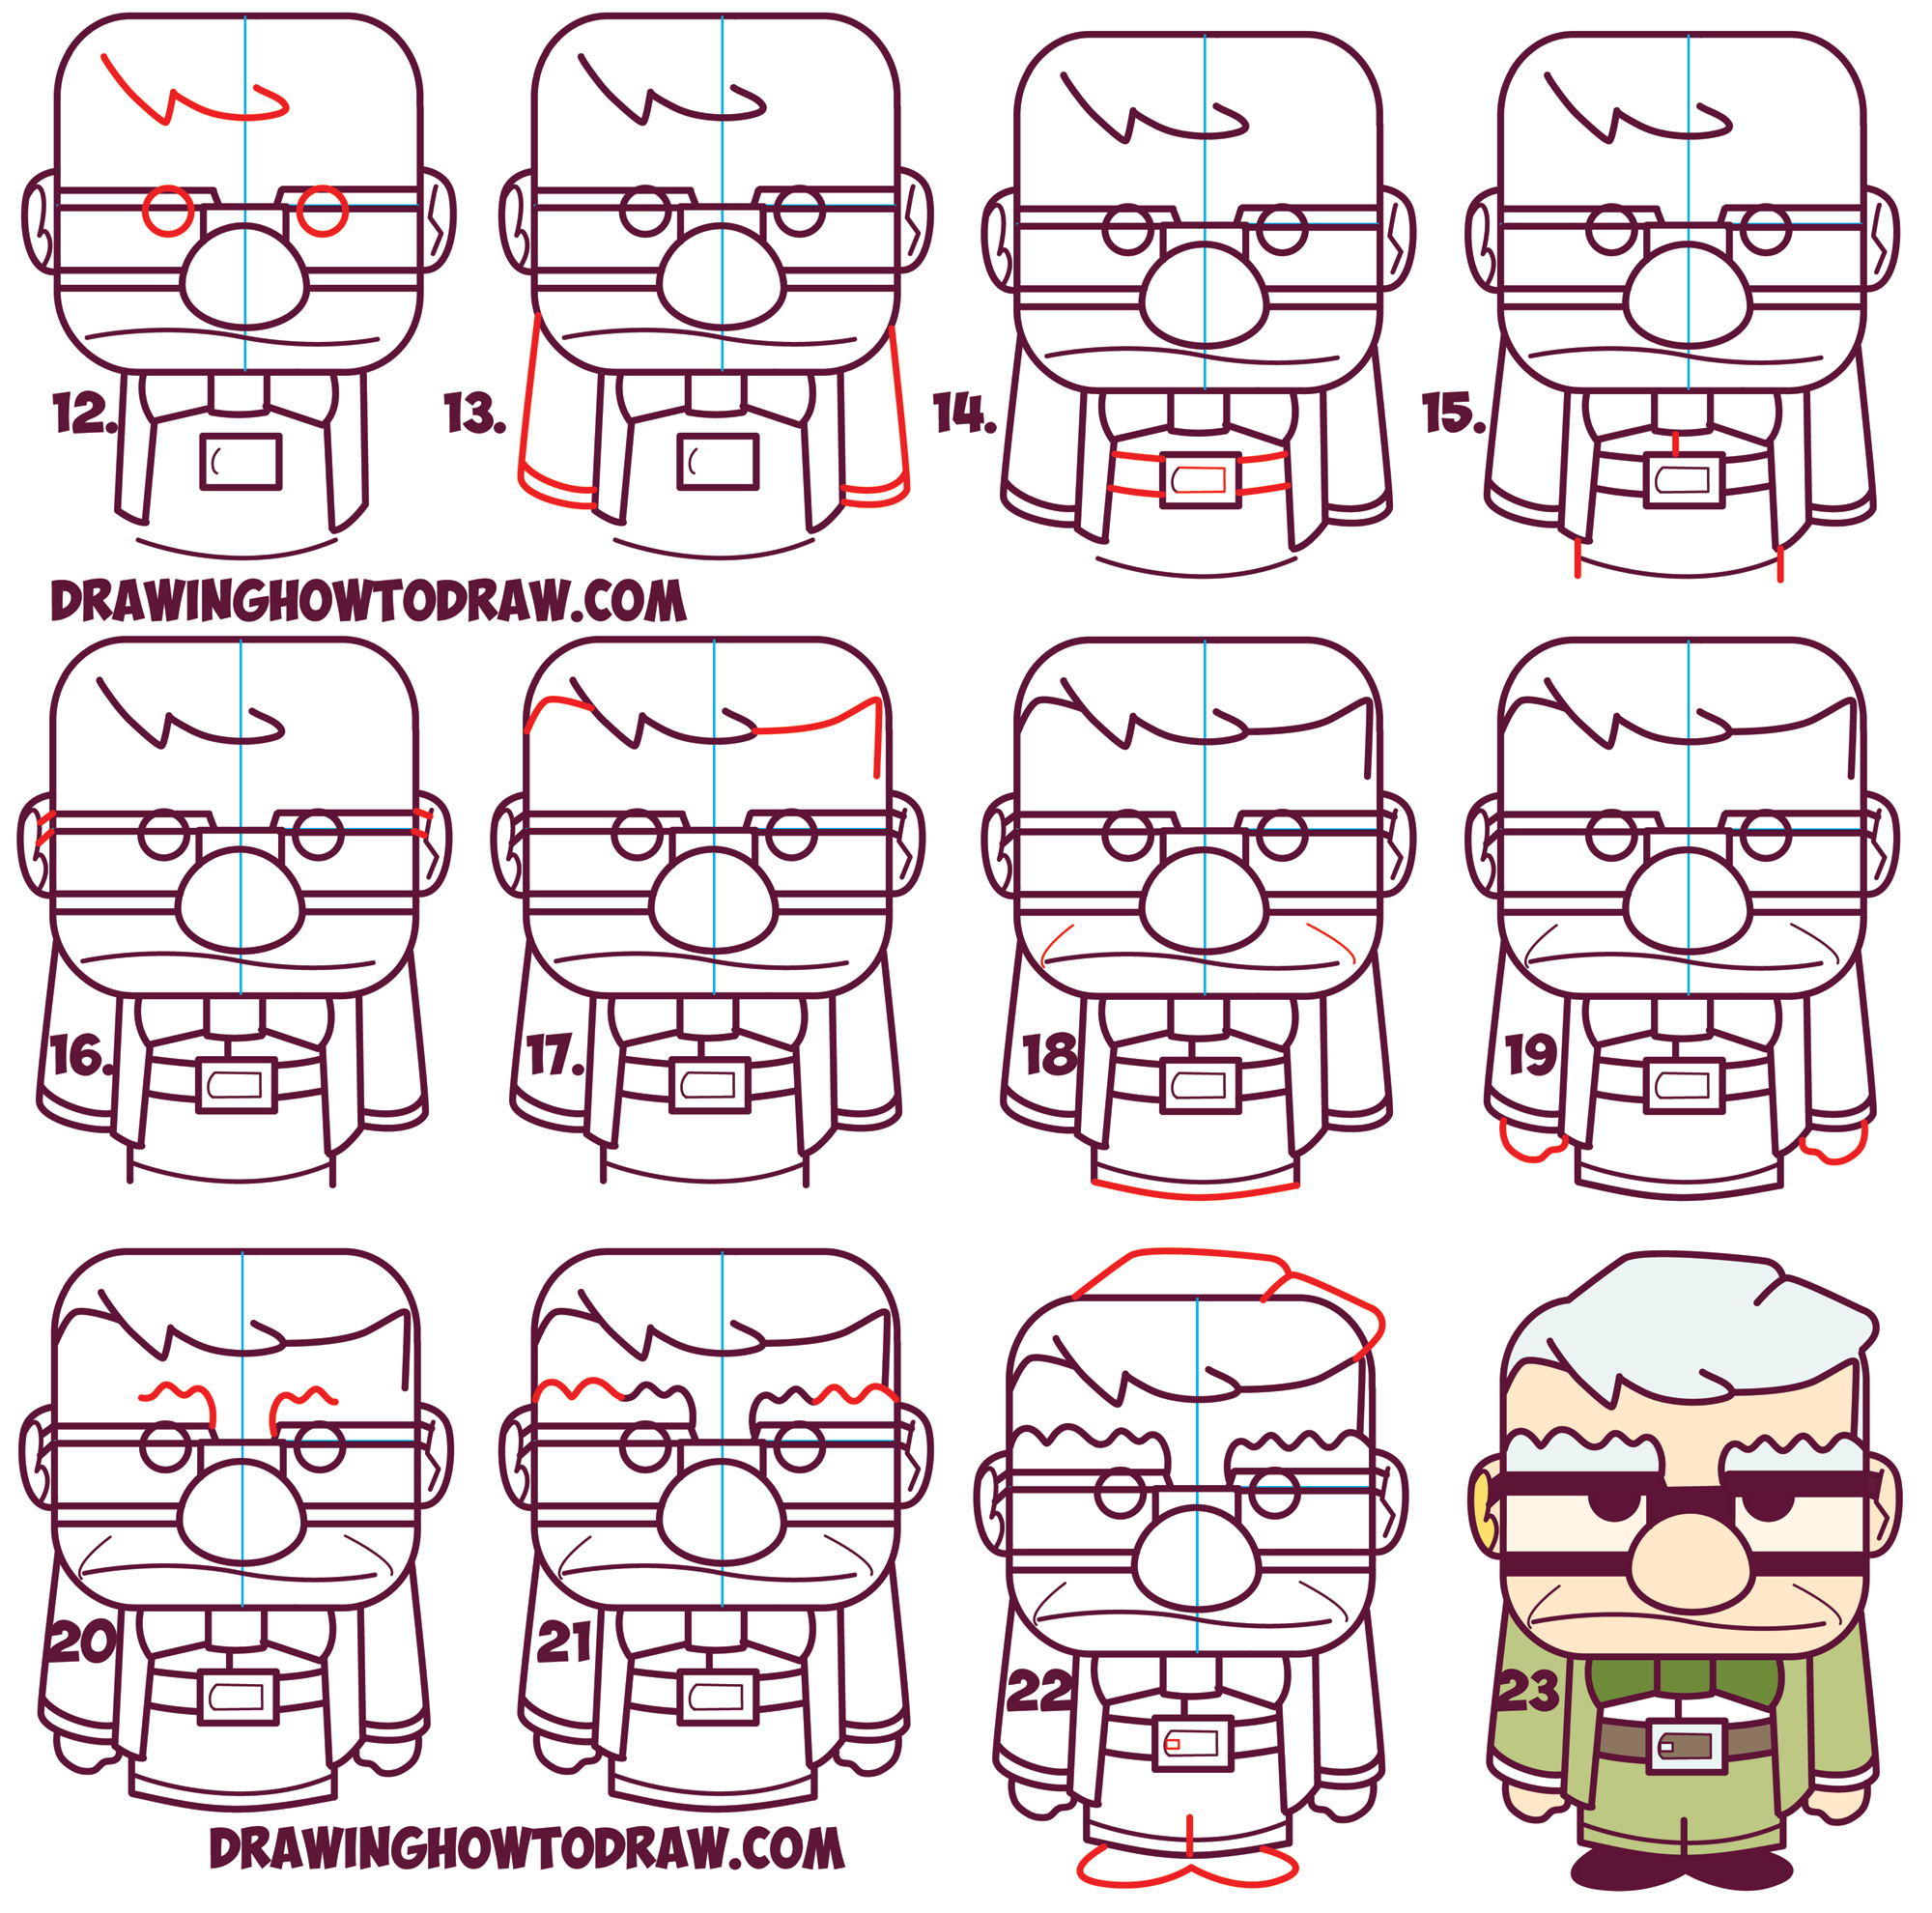 2000x1980 How To Draw Carl Fredricksen The Old Man From Pixar's Up (Cute